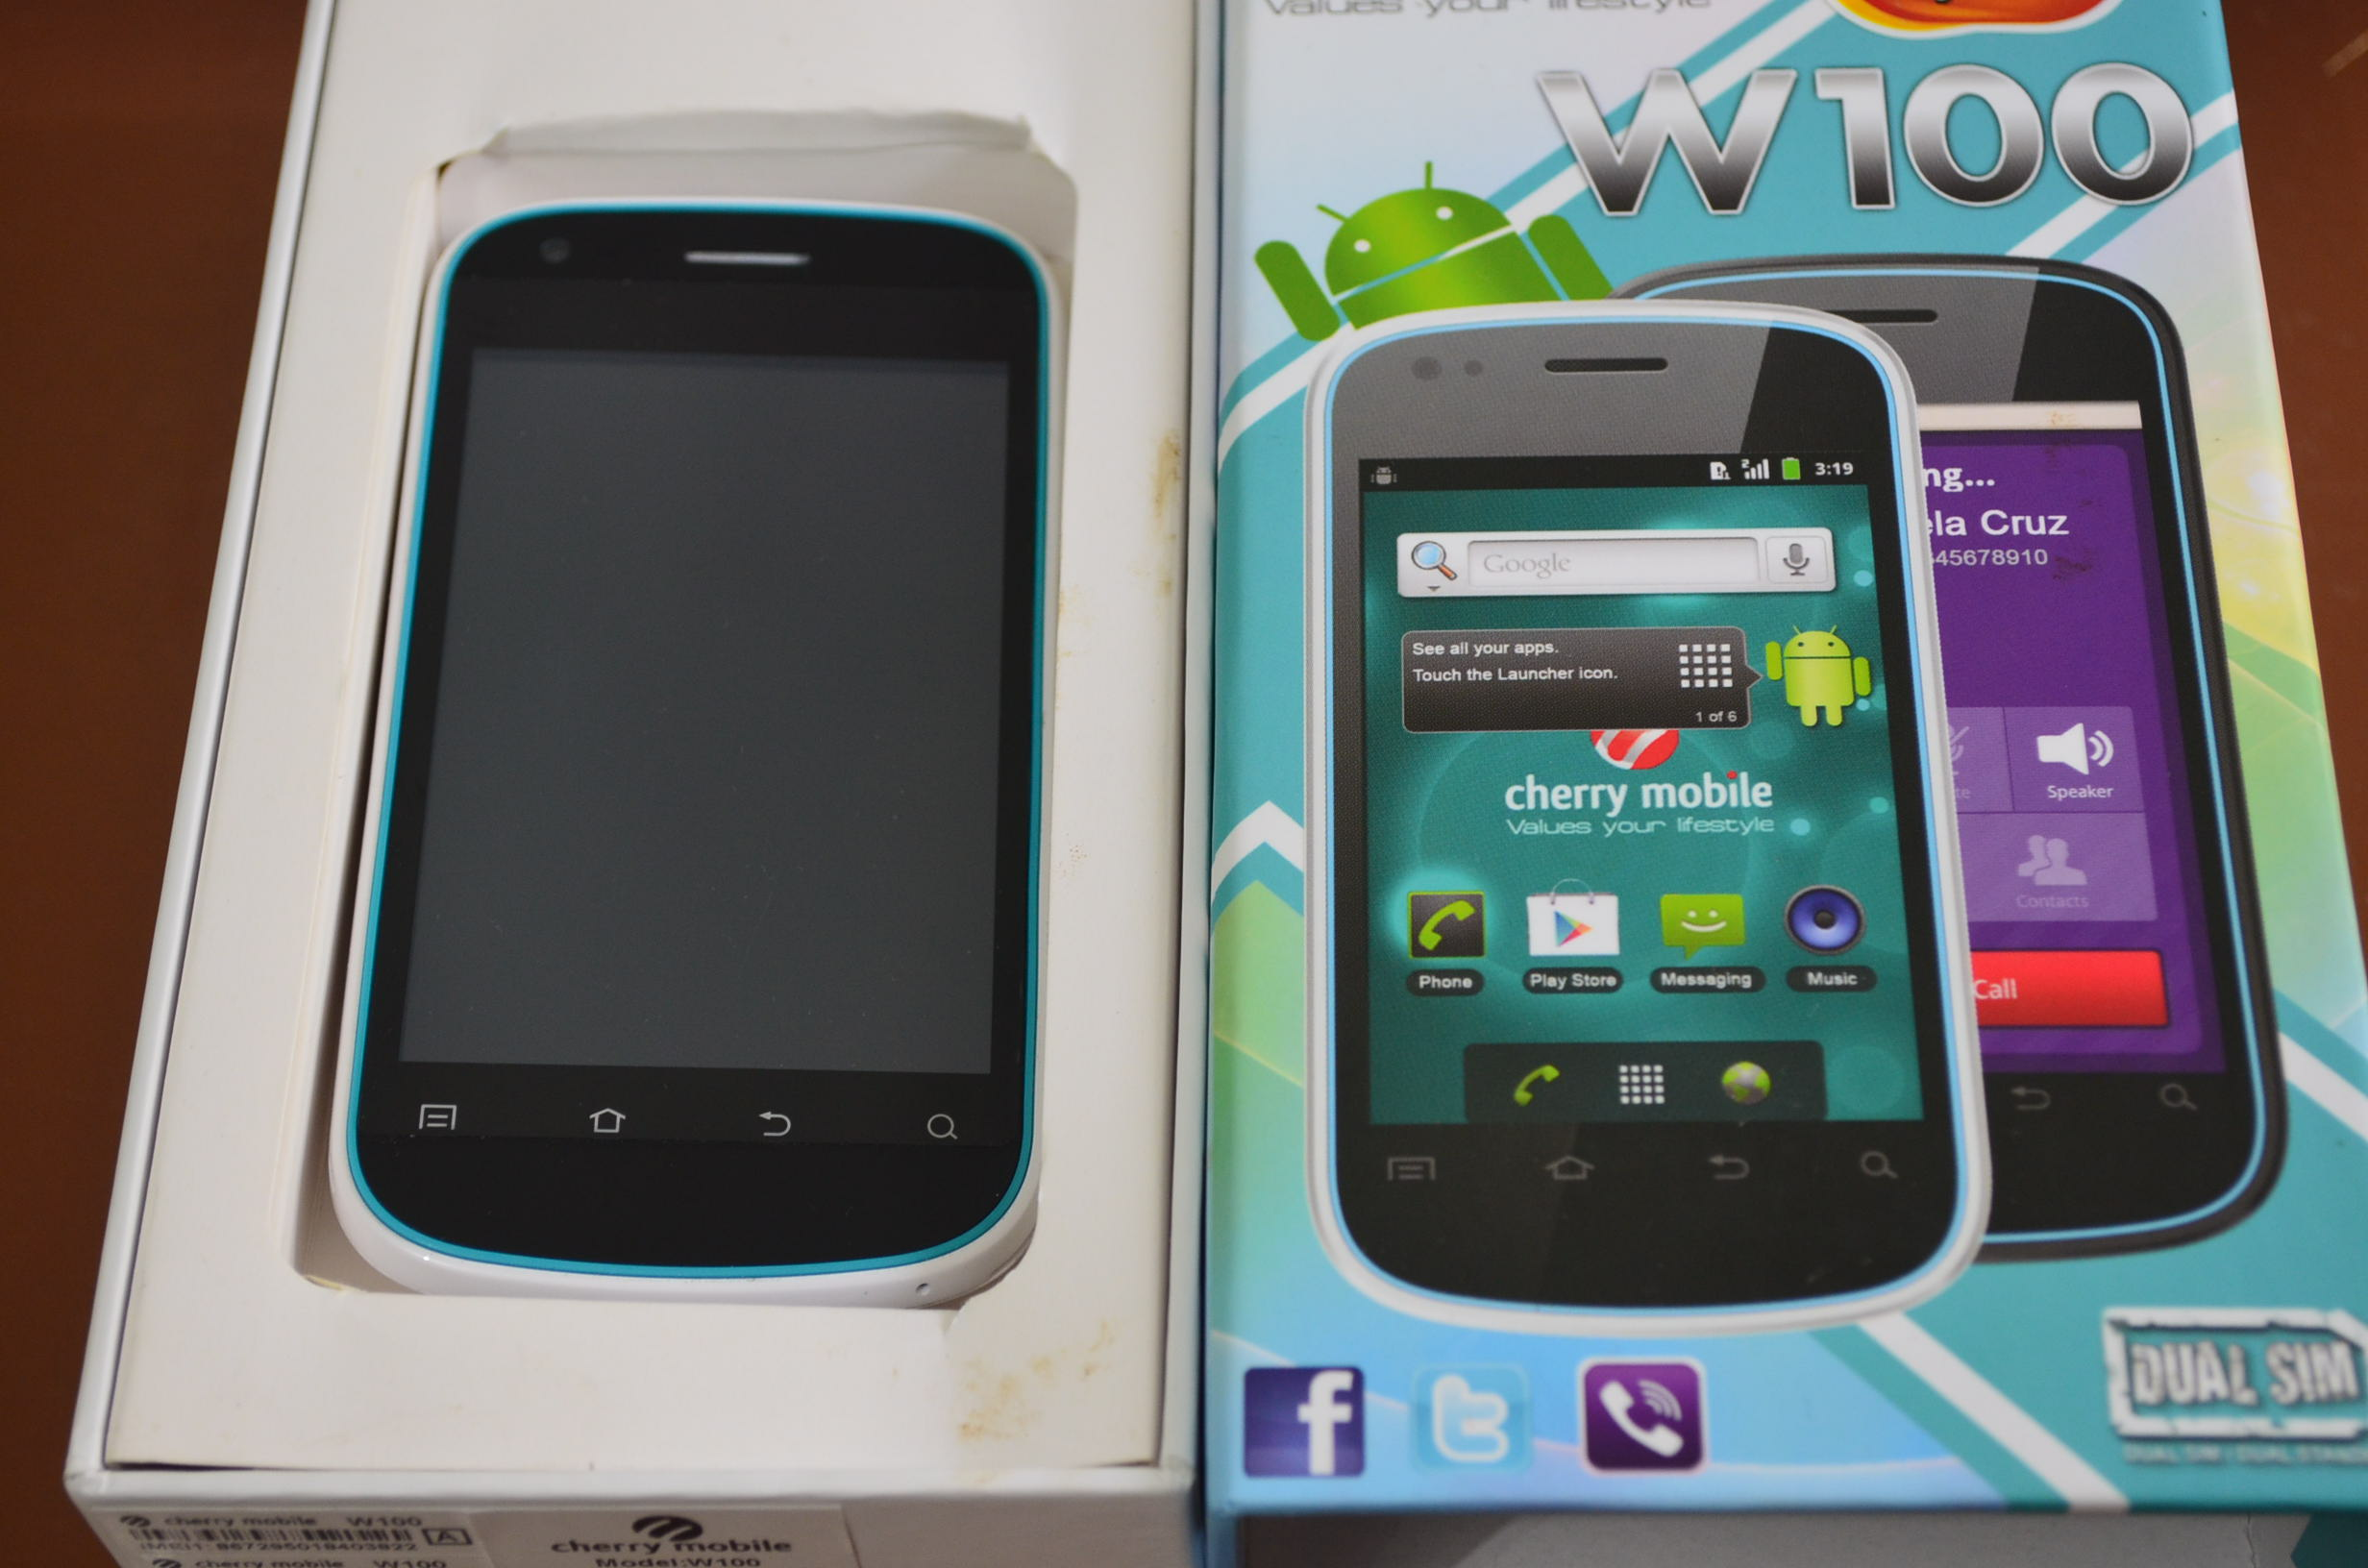 Cherry Mobile W100 and Box